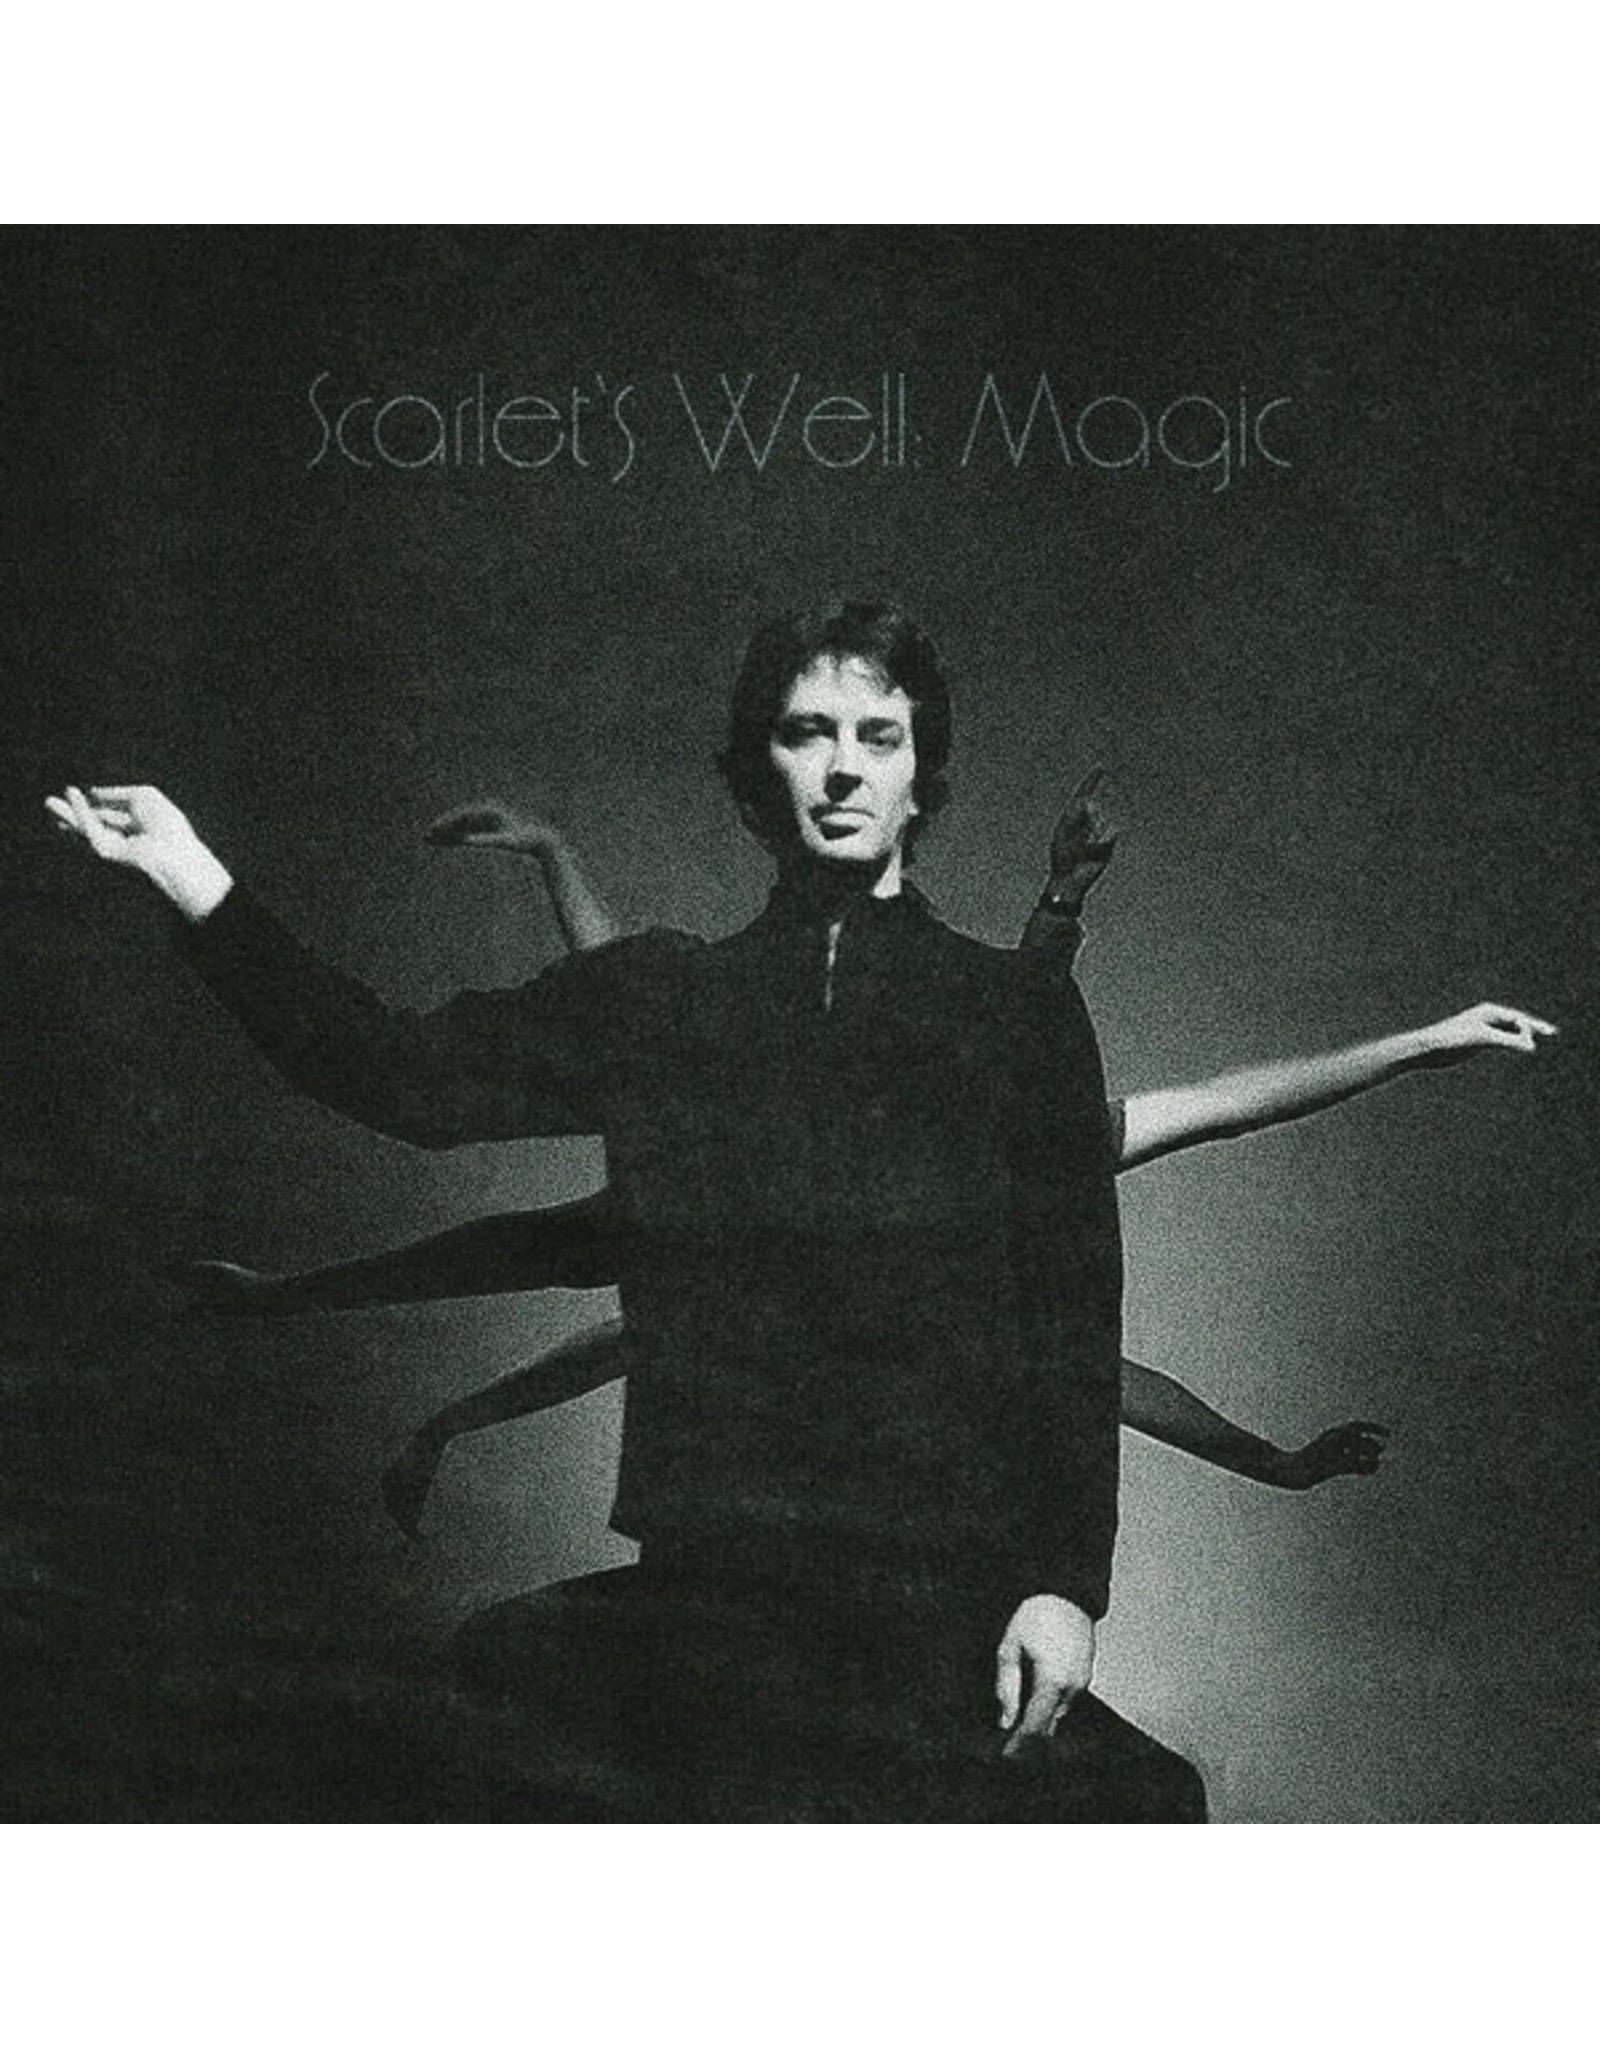 New Vinyl Scarlet's Well - Magic (Selections from 1999-2010) LP